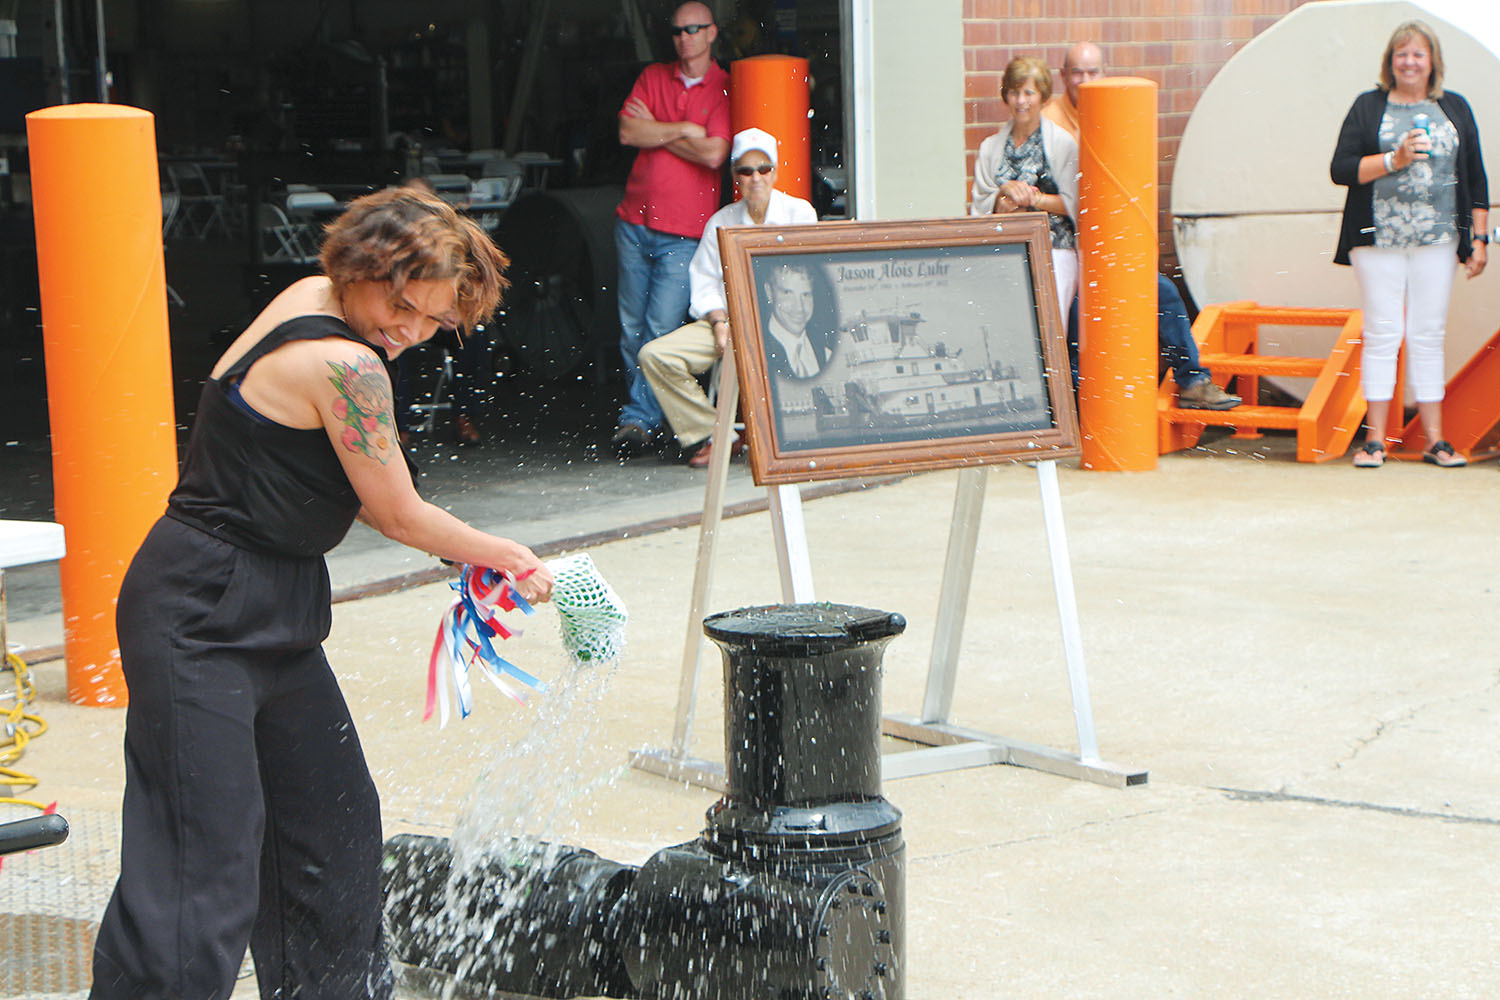 Kacie Maxwell breaks champagne bottle over mock-up of mv. Jason Luhr. (Photo by H. Nelson Spencer)